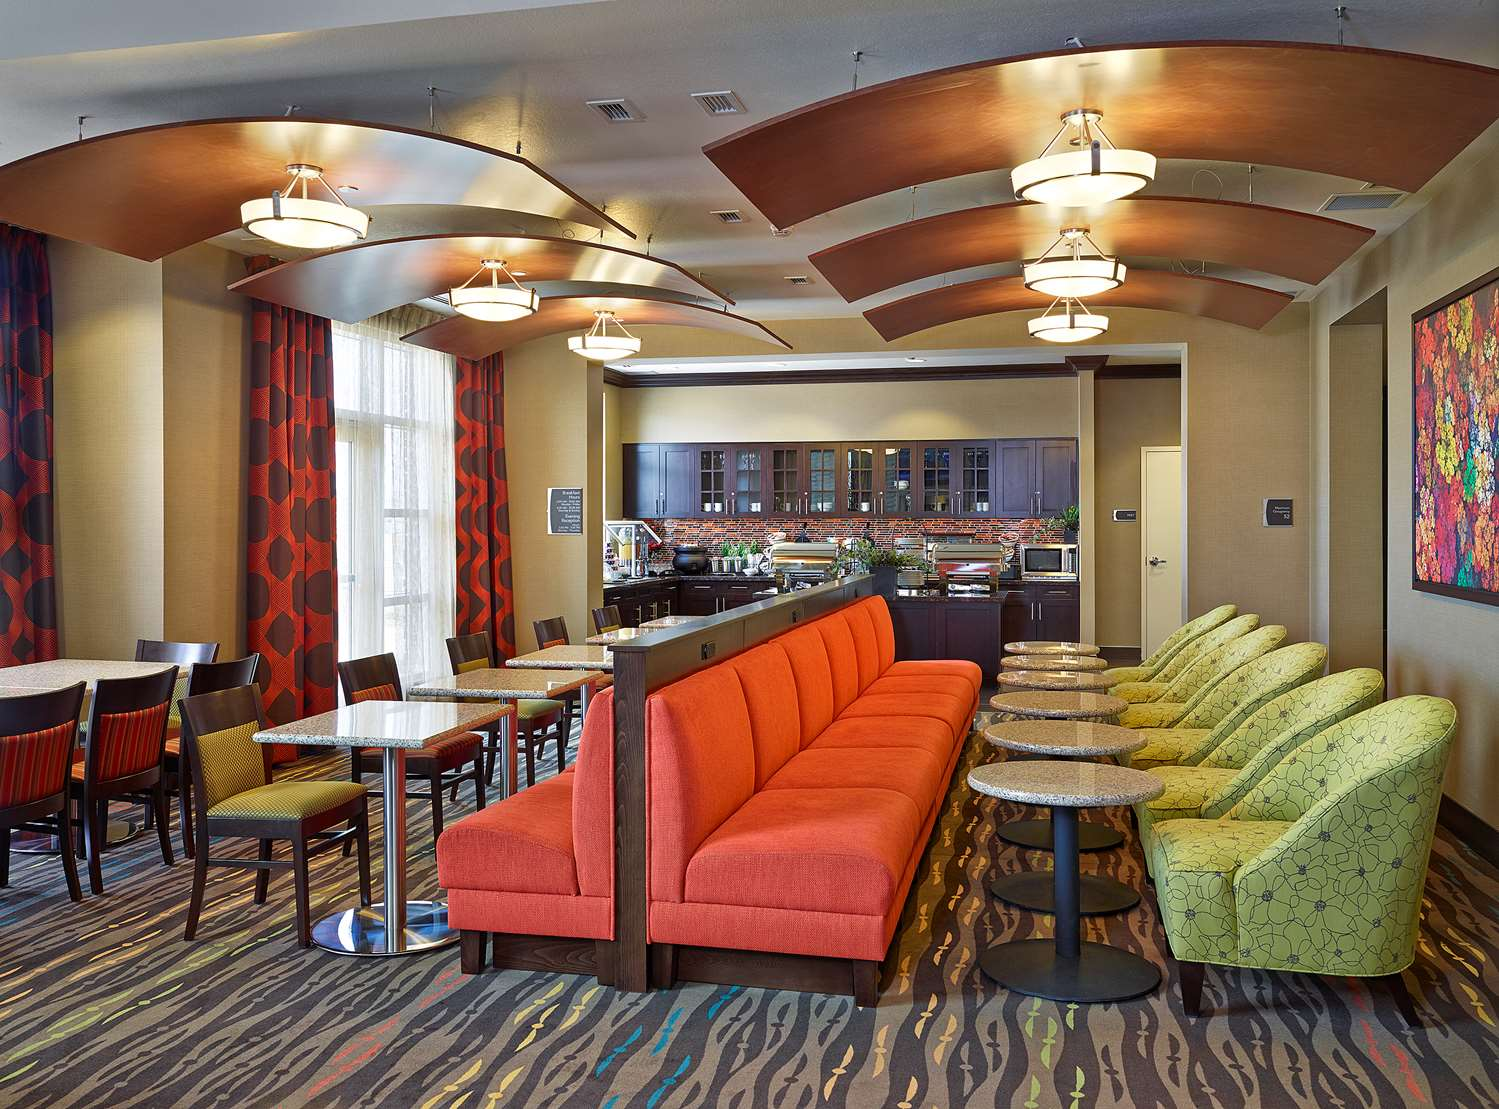 Restaurant - Homewood Suites by Hilton Airport Calgary